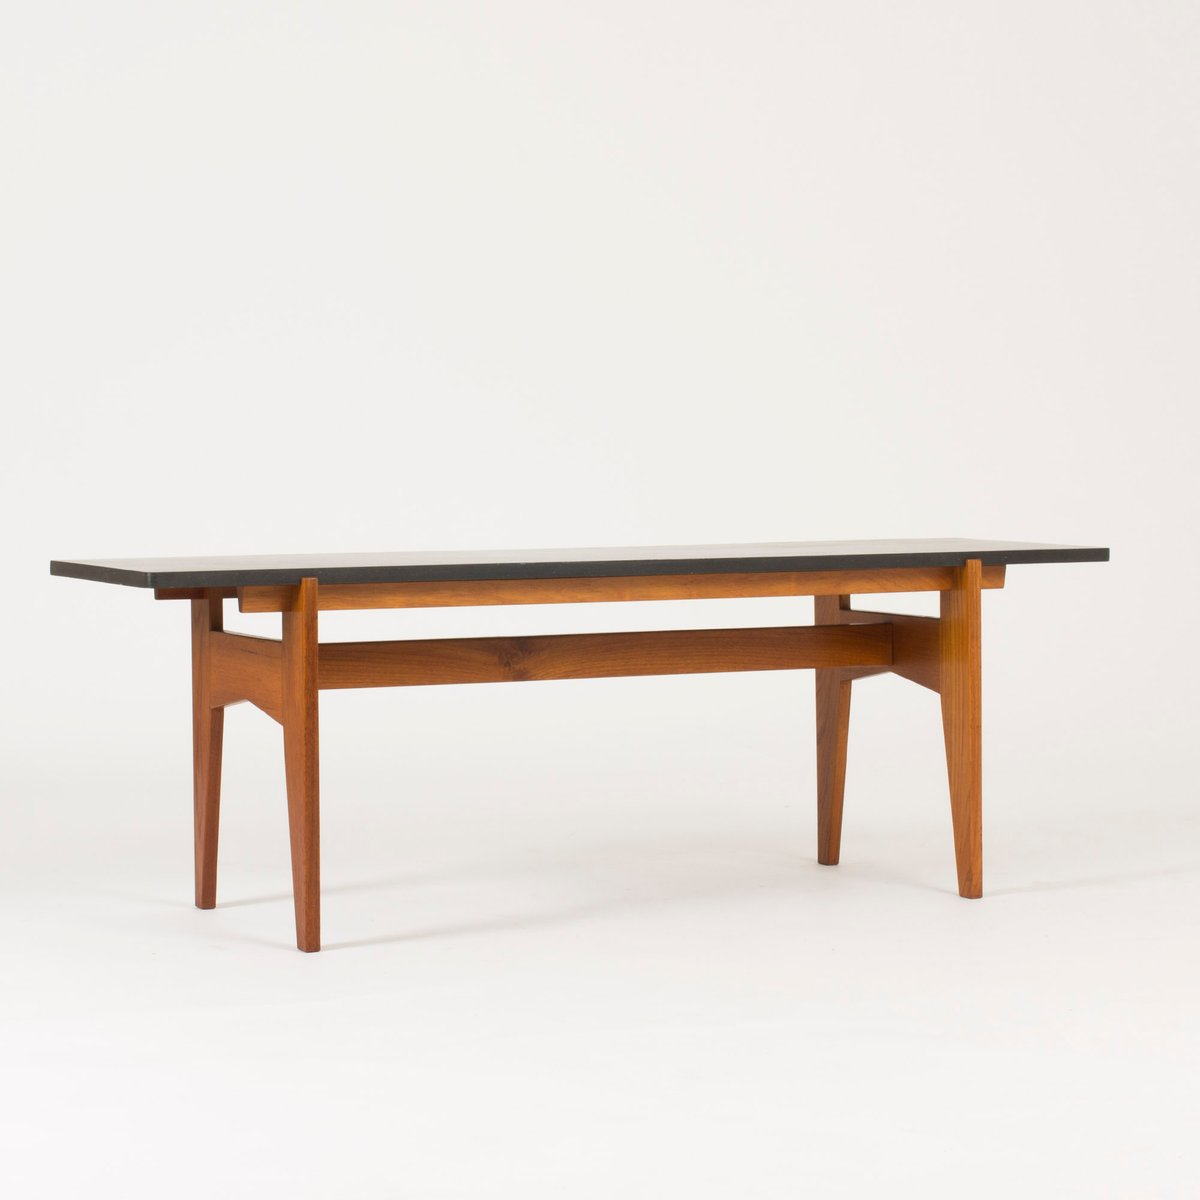 Marble Coffee Table Hk: Teak And Black Marble Coffee Table By Hans-Agne Jakobsson